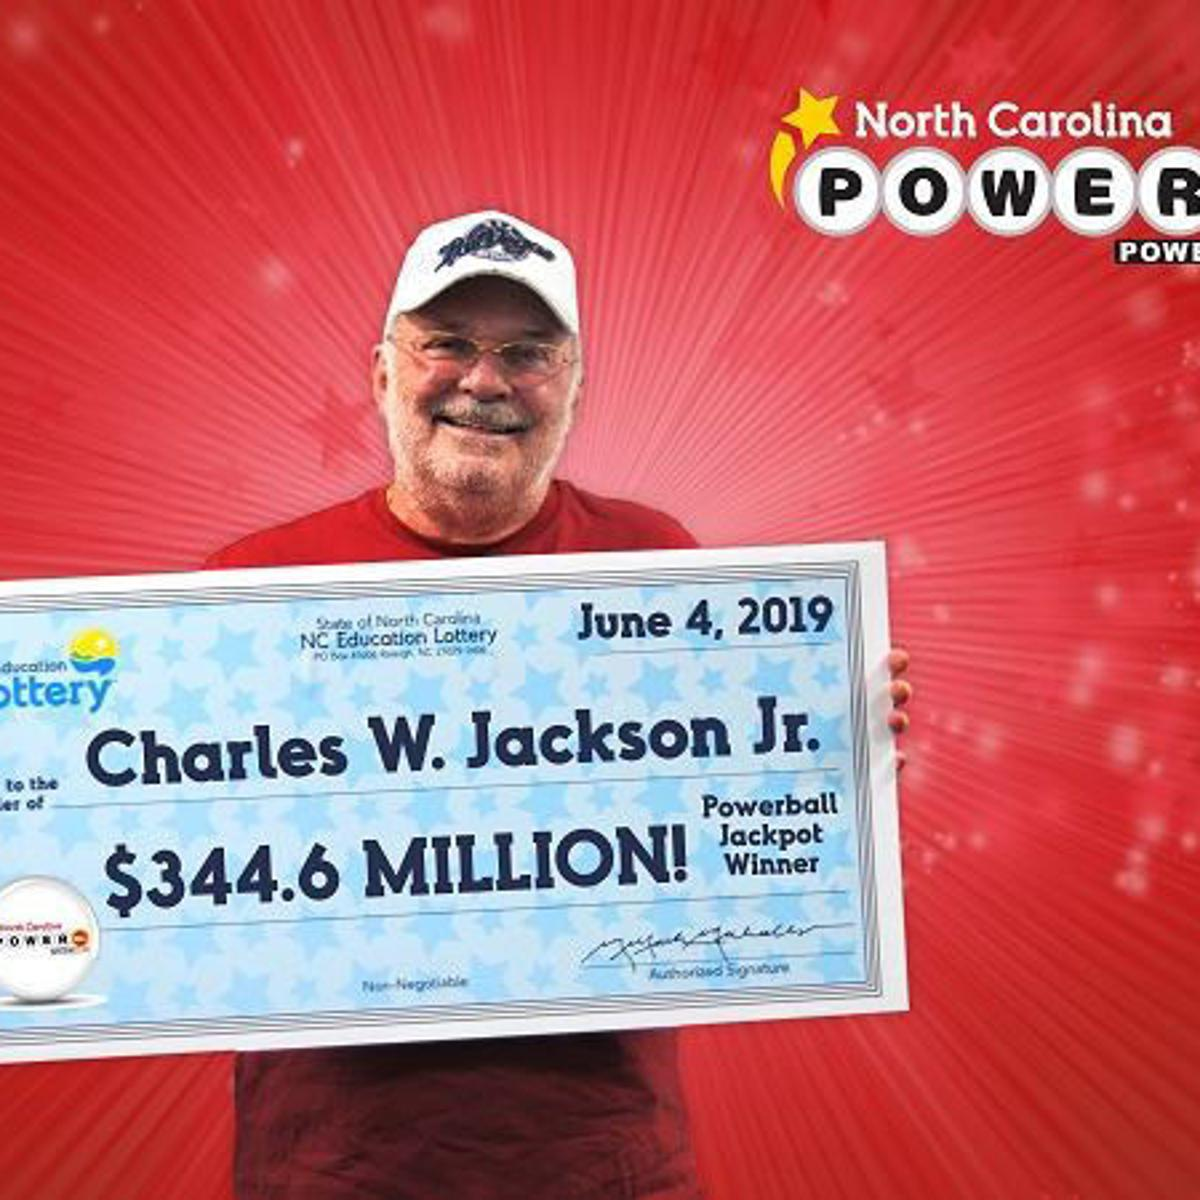 Meet the lucky guy who just won N C 's biggest Powerball